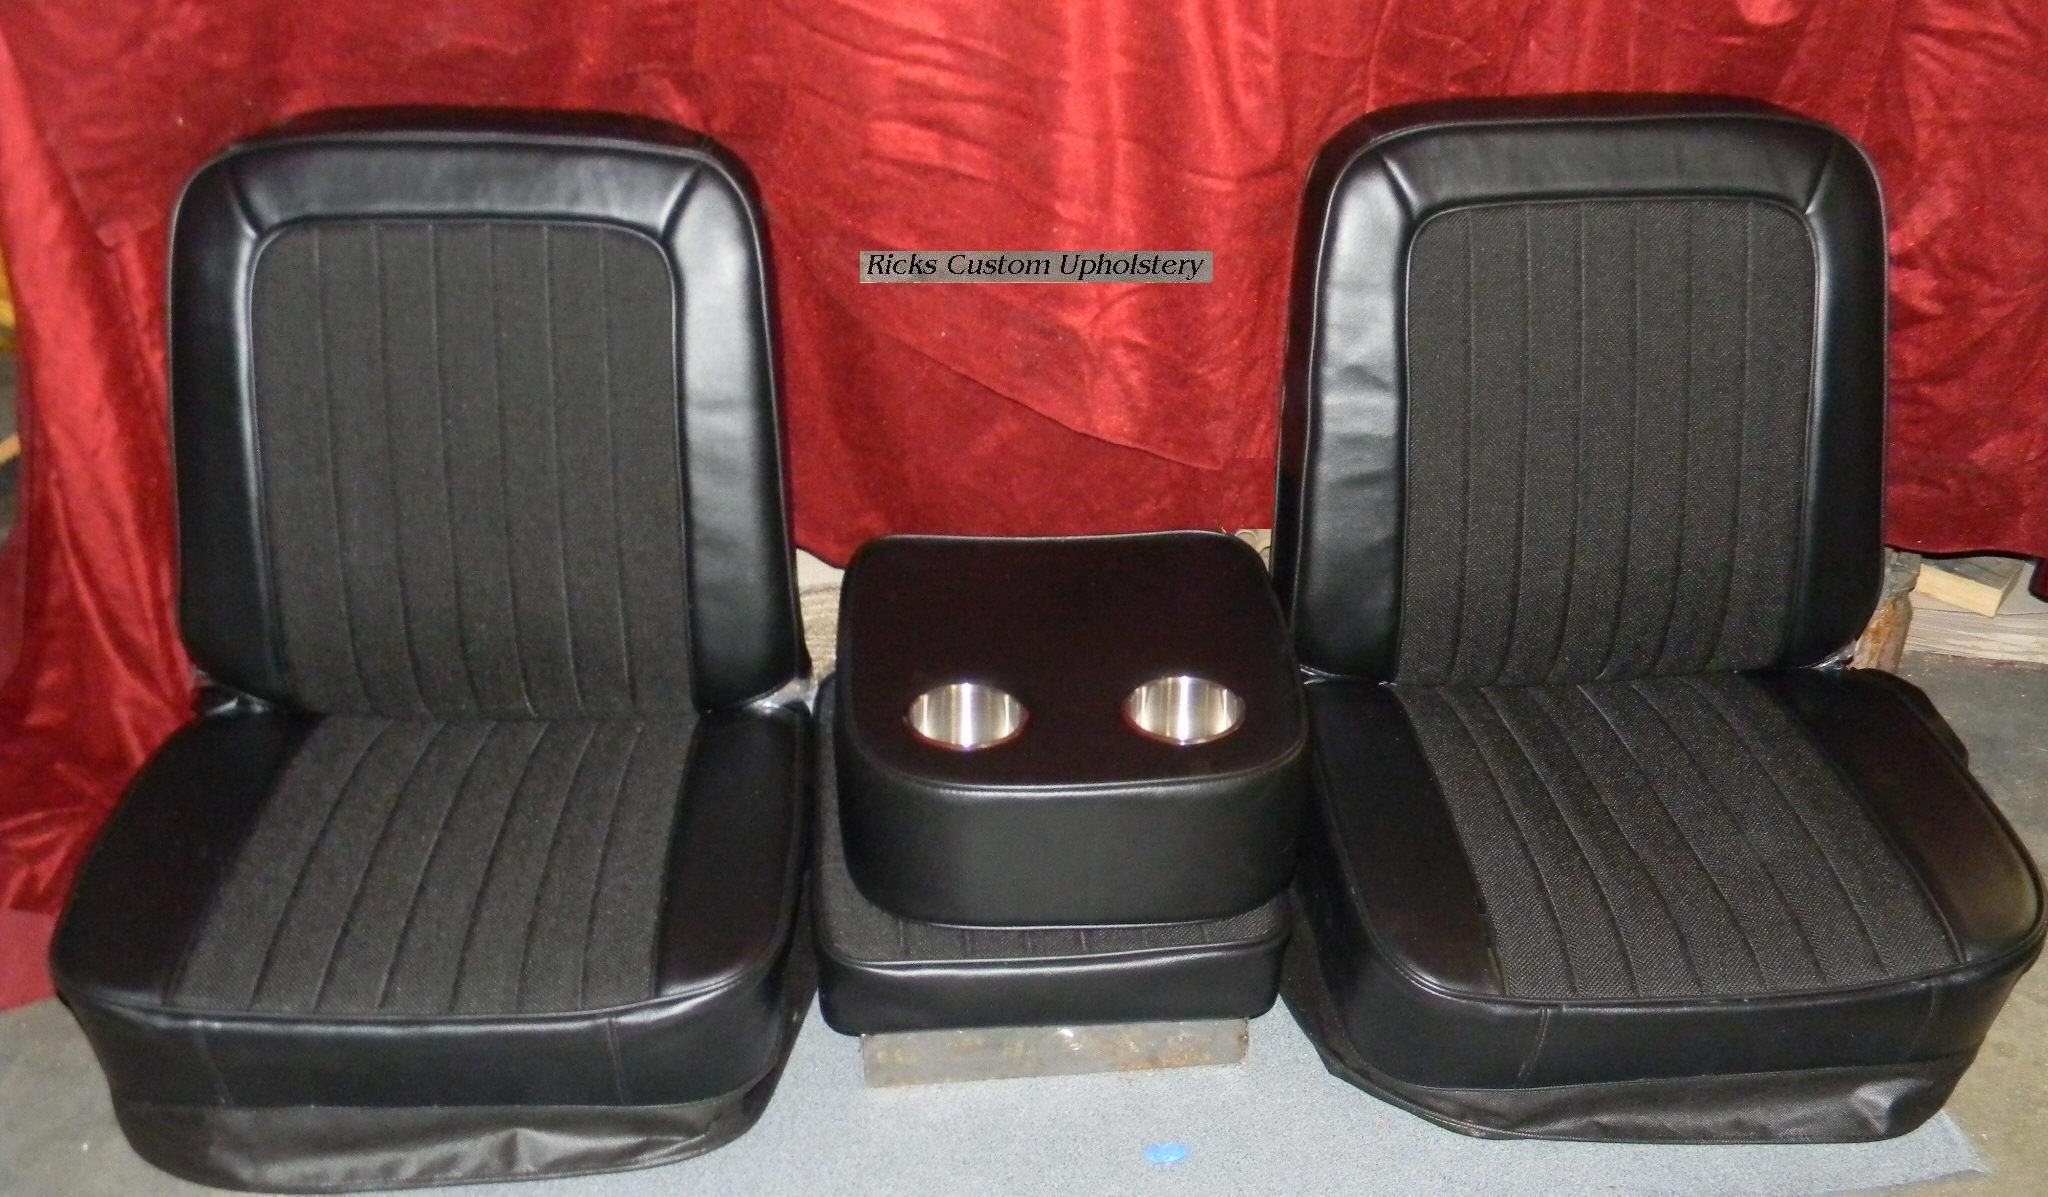 67-72 Chevy Truck / Bucket Seats and Console / Rick's ... |Silverado Bucket Seats And Console